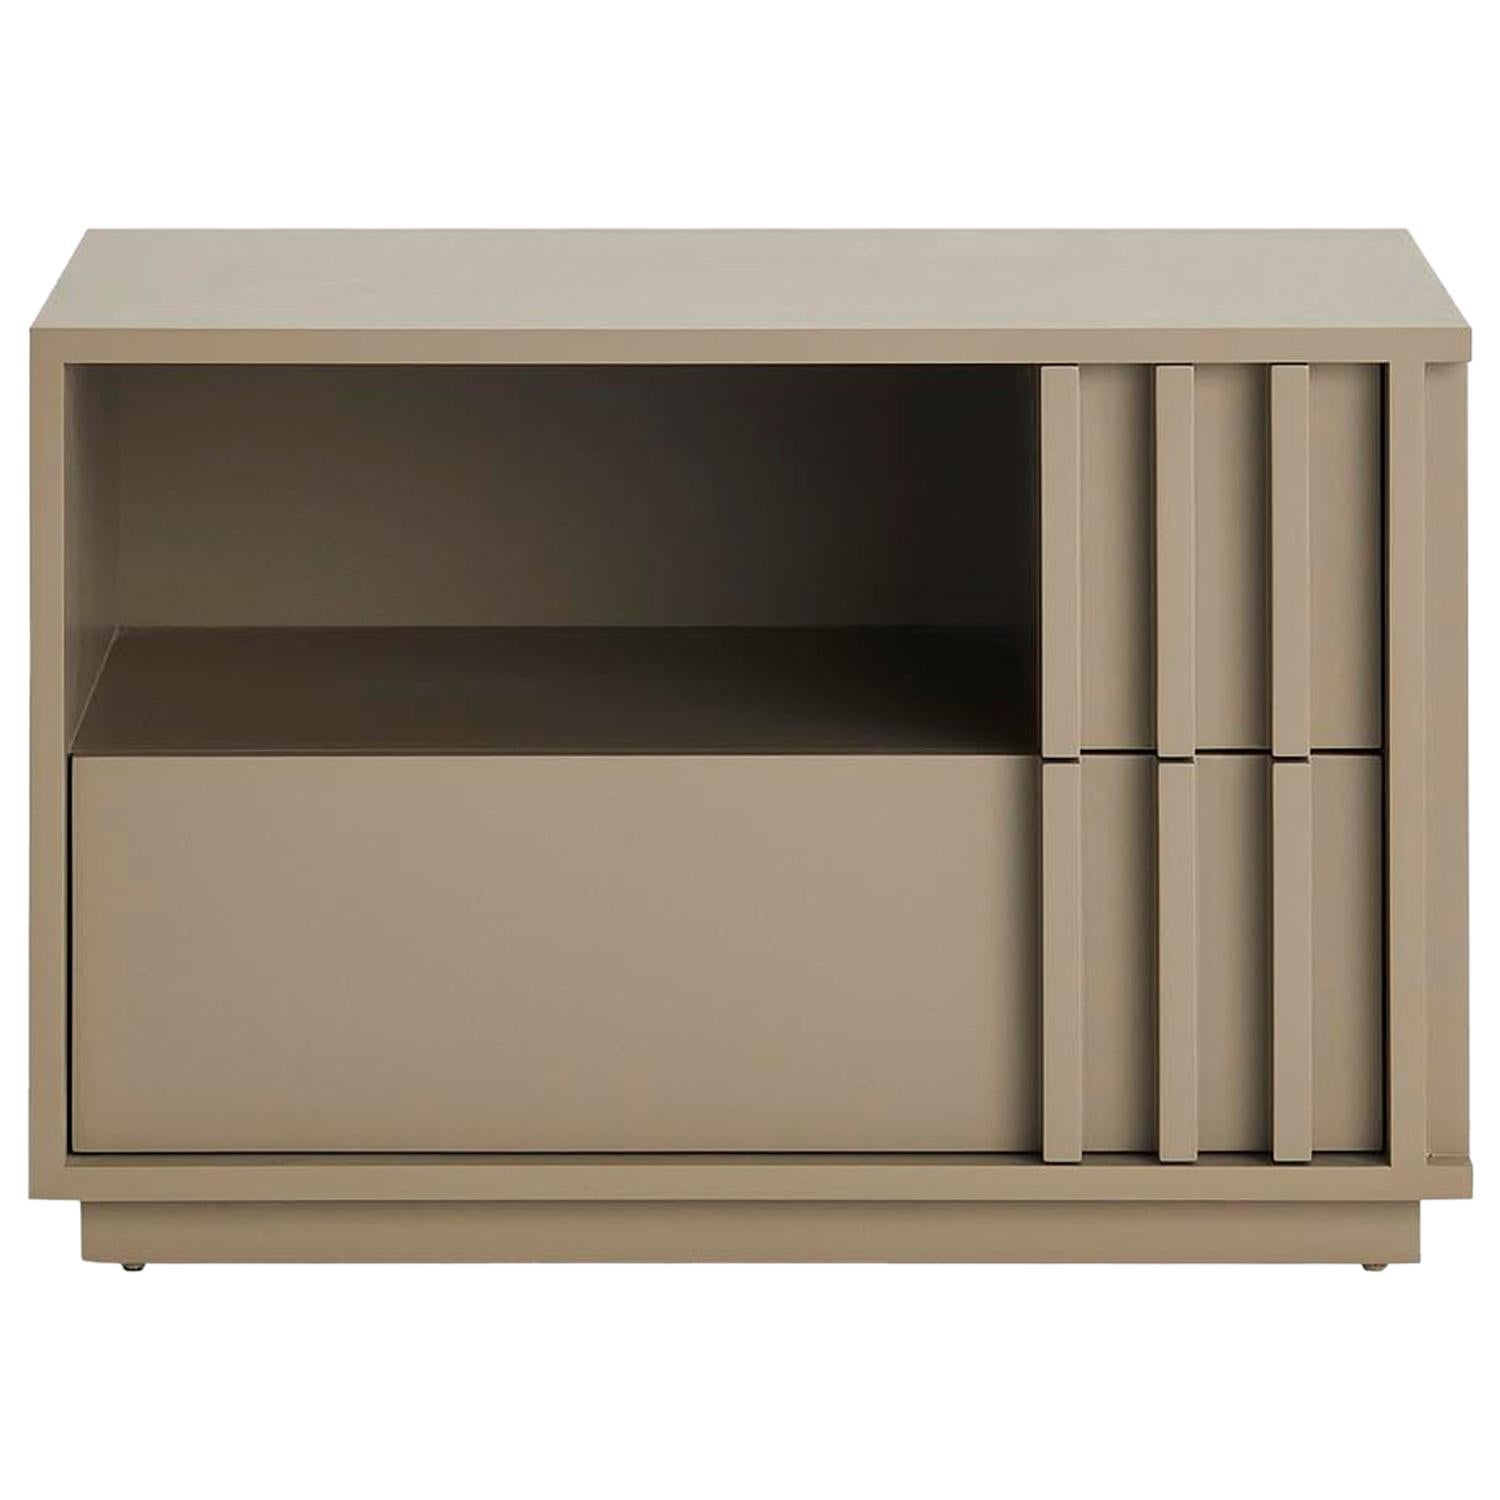 Relevo Nightstand with Two Drawers in Lacquered Structure